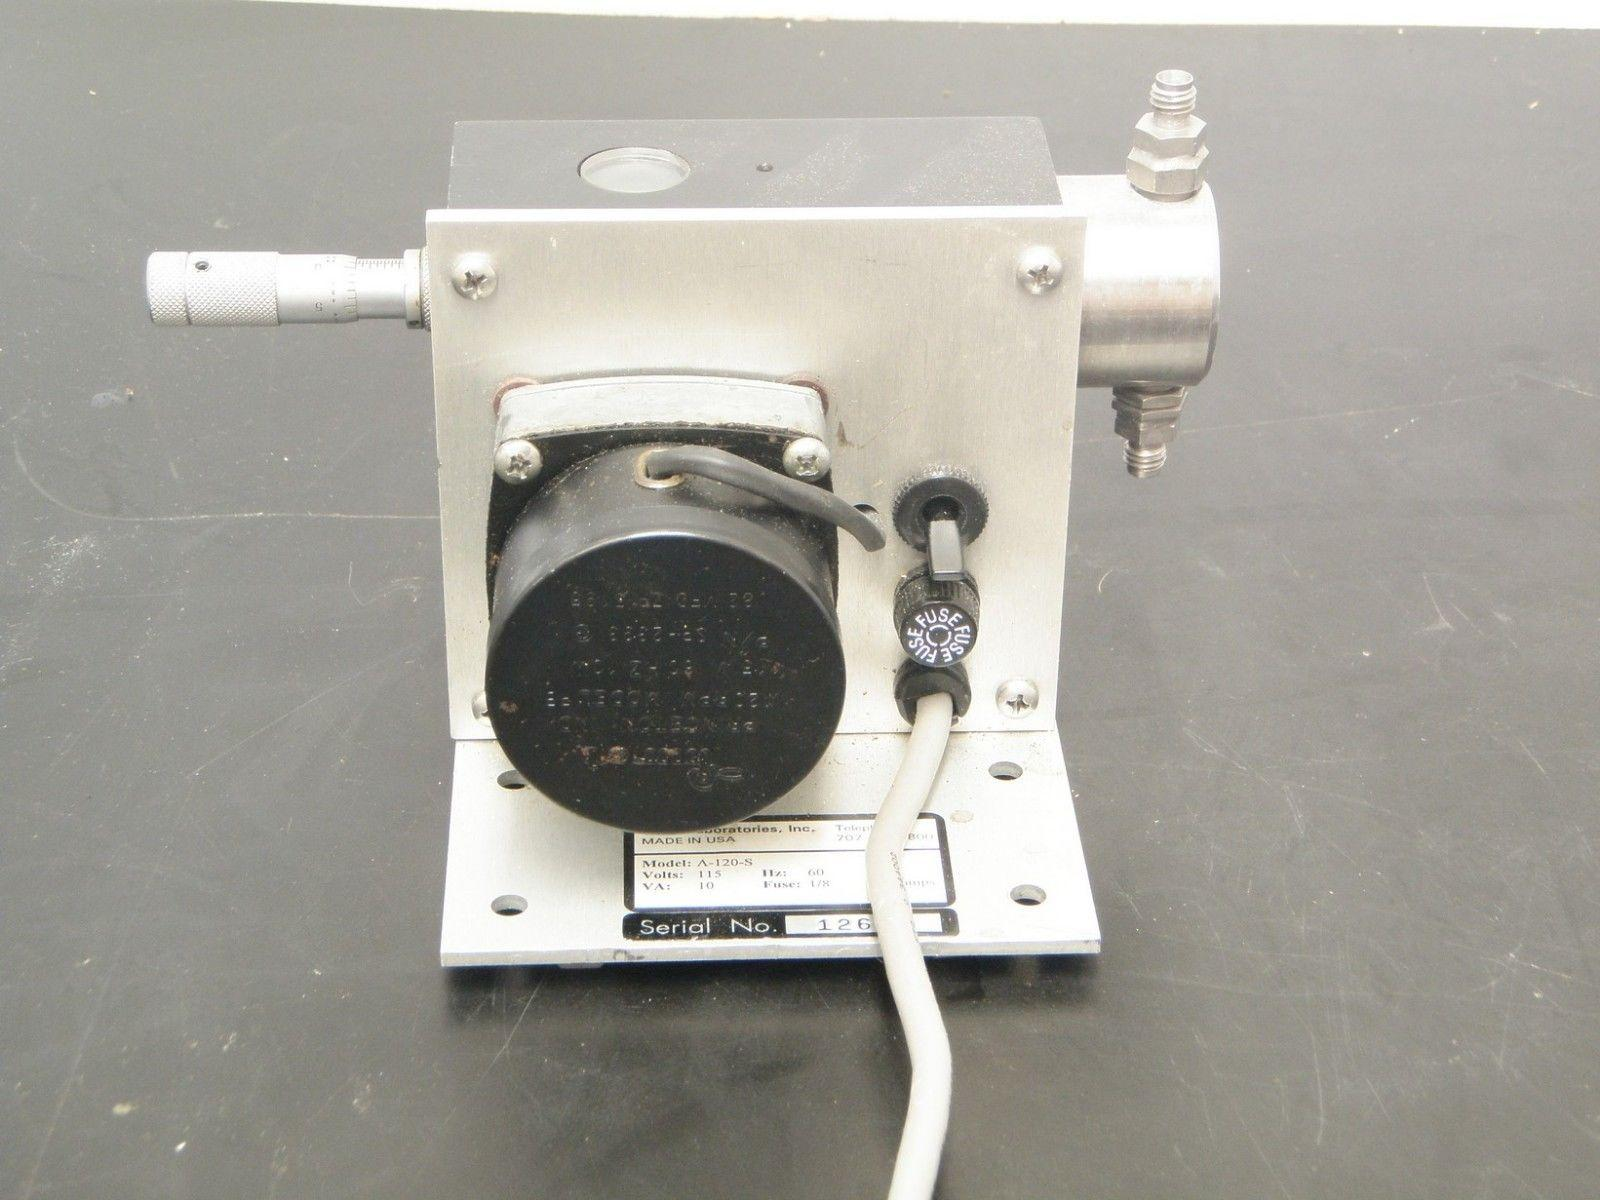 Eldex Laboratories High Pressure Metering Pump Model A-120-S